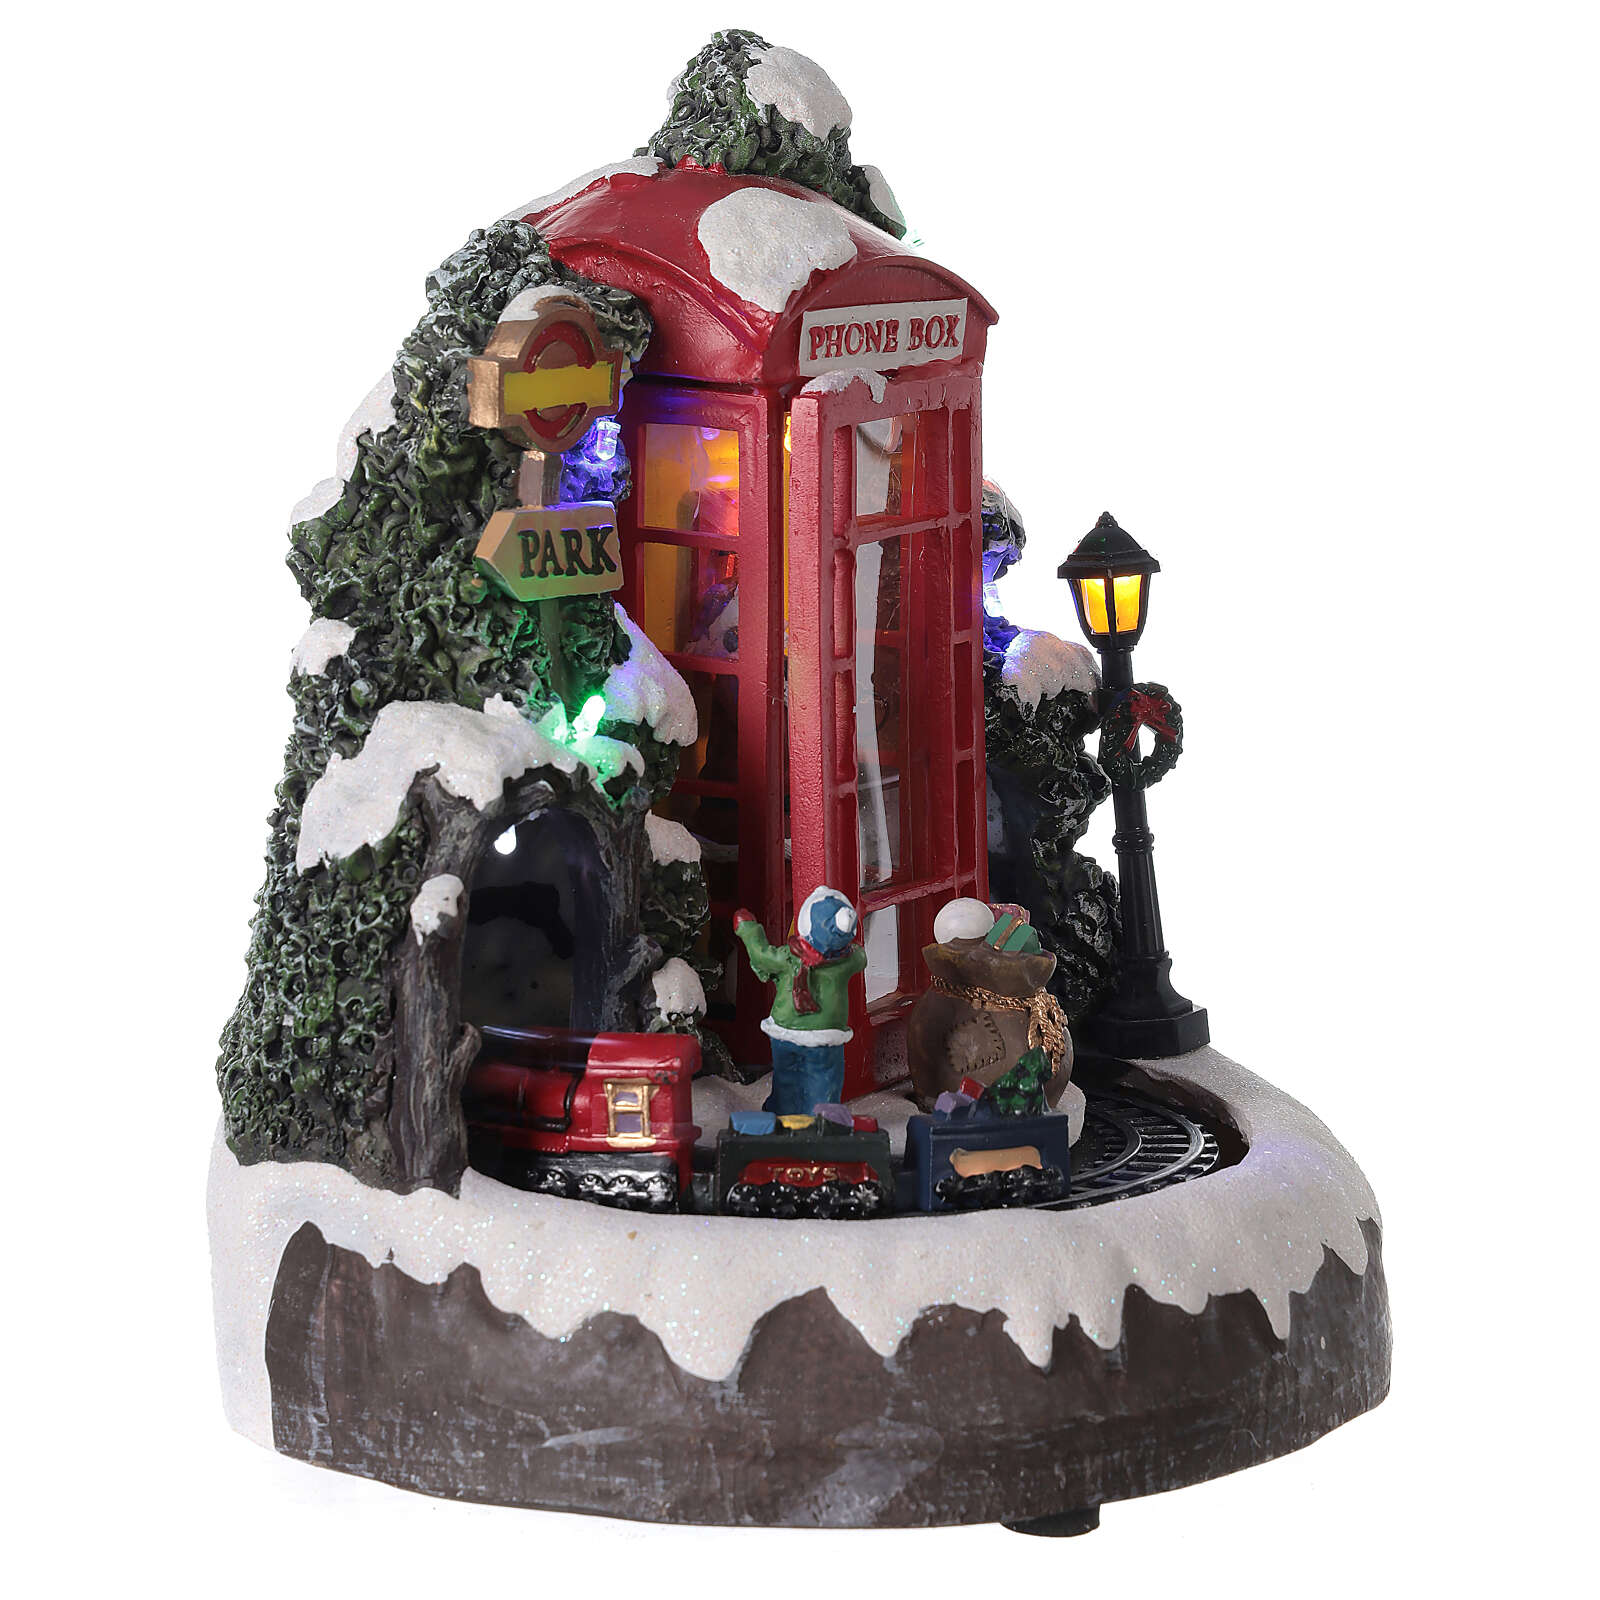 Phone booth Santa Claus village with train lights music 20x20x20 cm 3